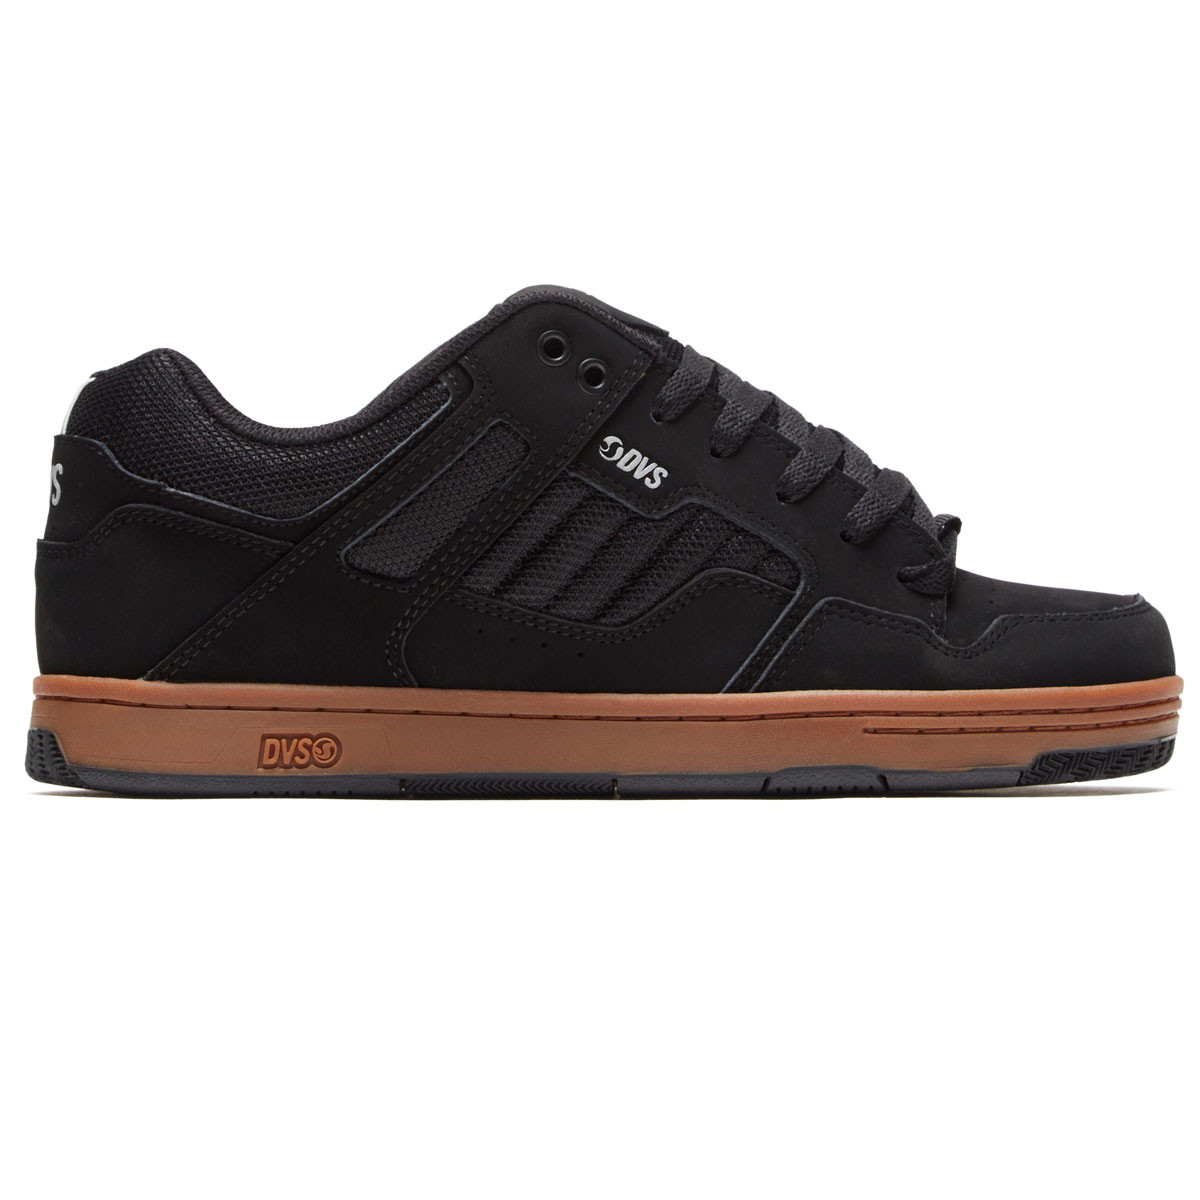 09971050d8 DVS Enduro 125 Shoes - Black Reflective Gum Nubuck - 8.0